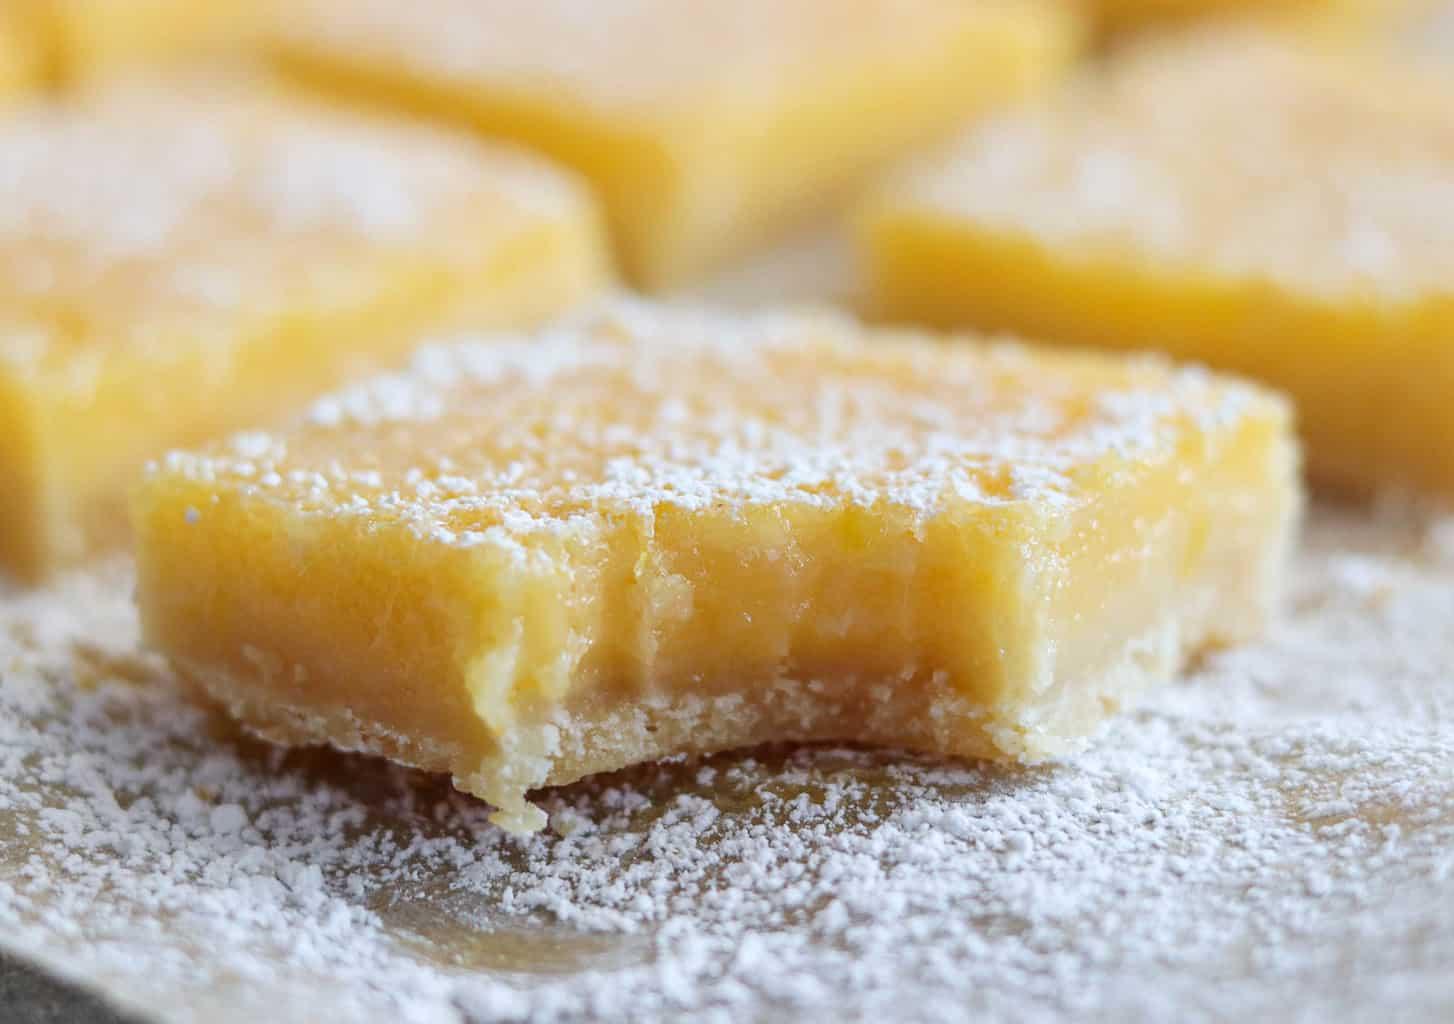 An up-close shot of a lemon bar with a bite taken out of it